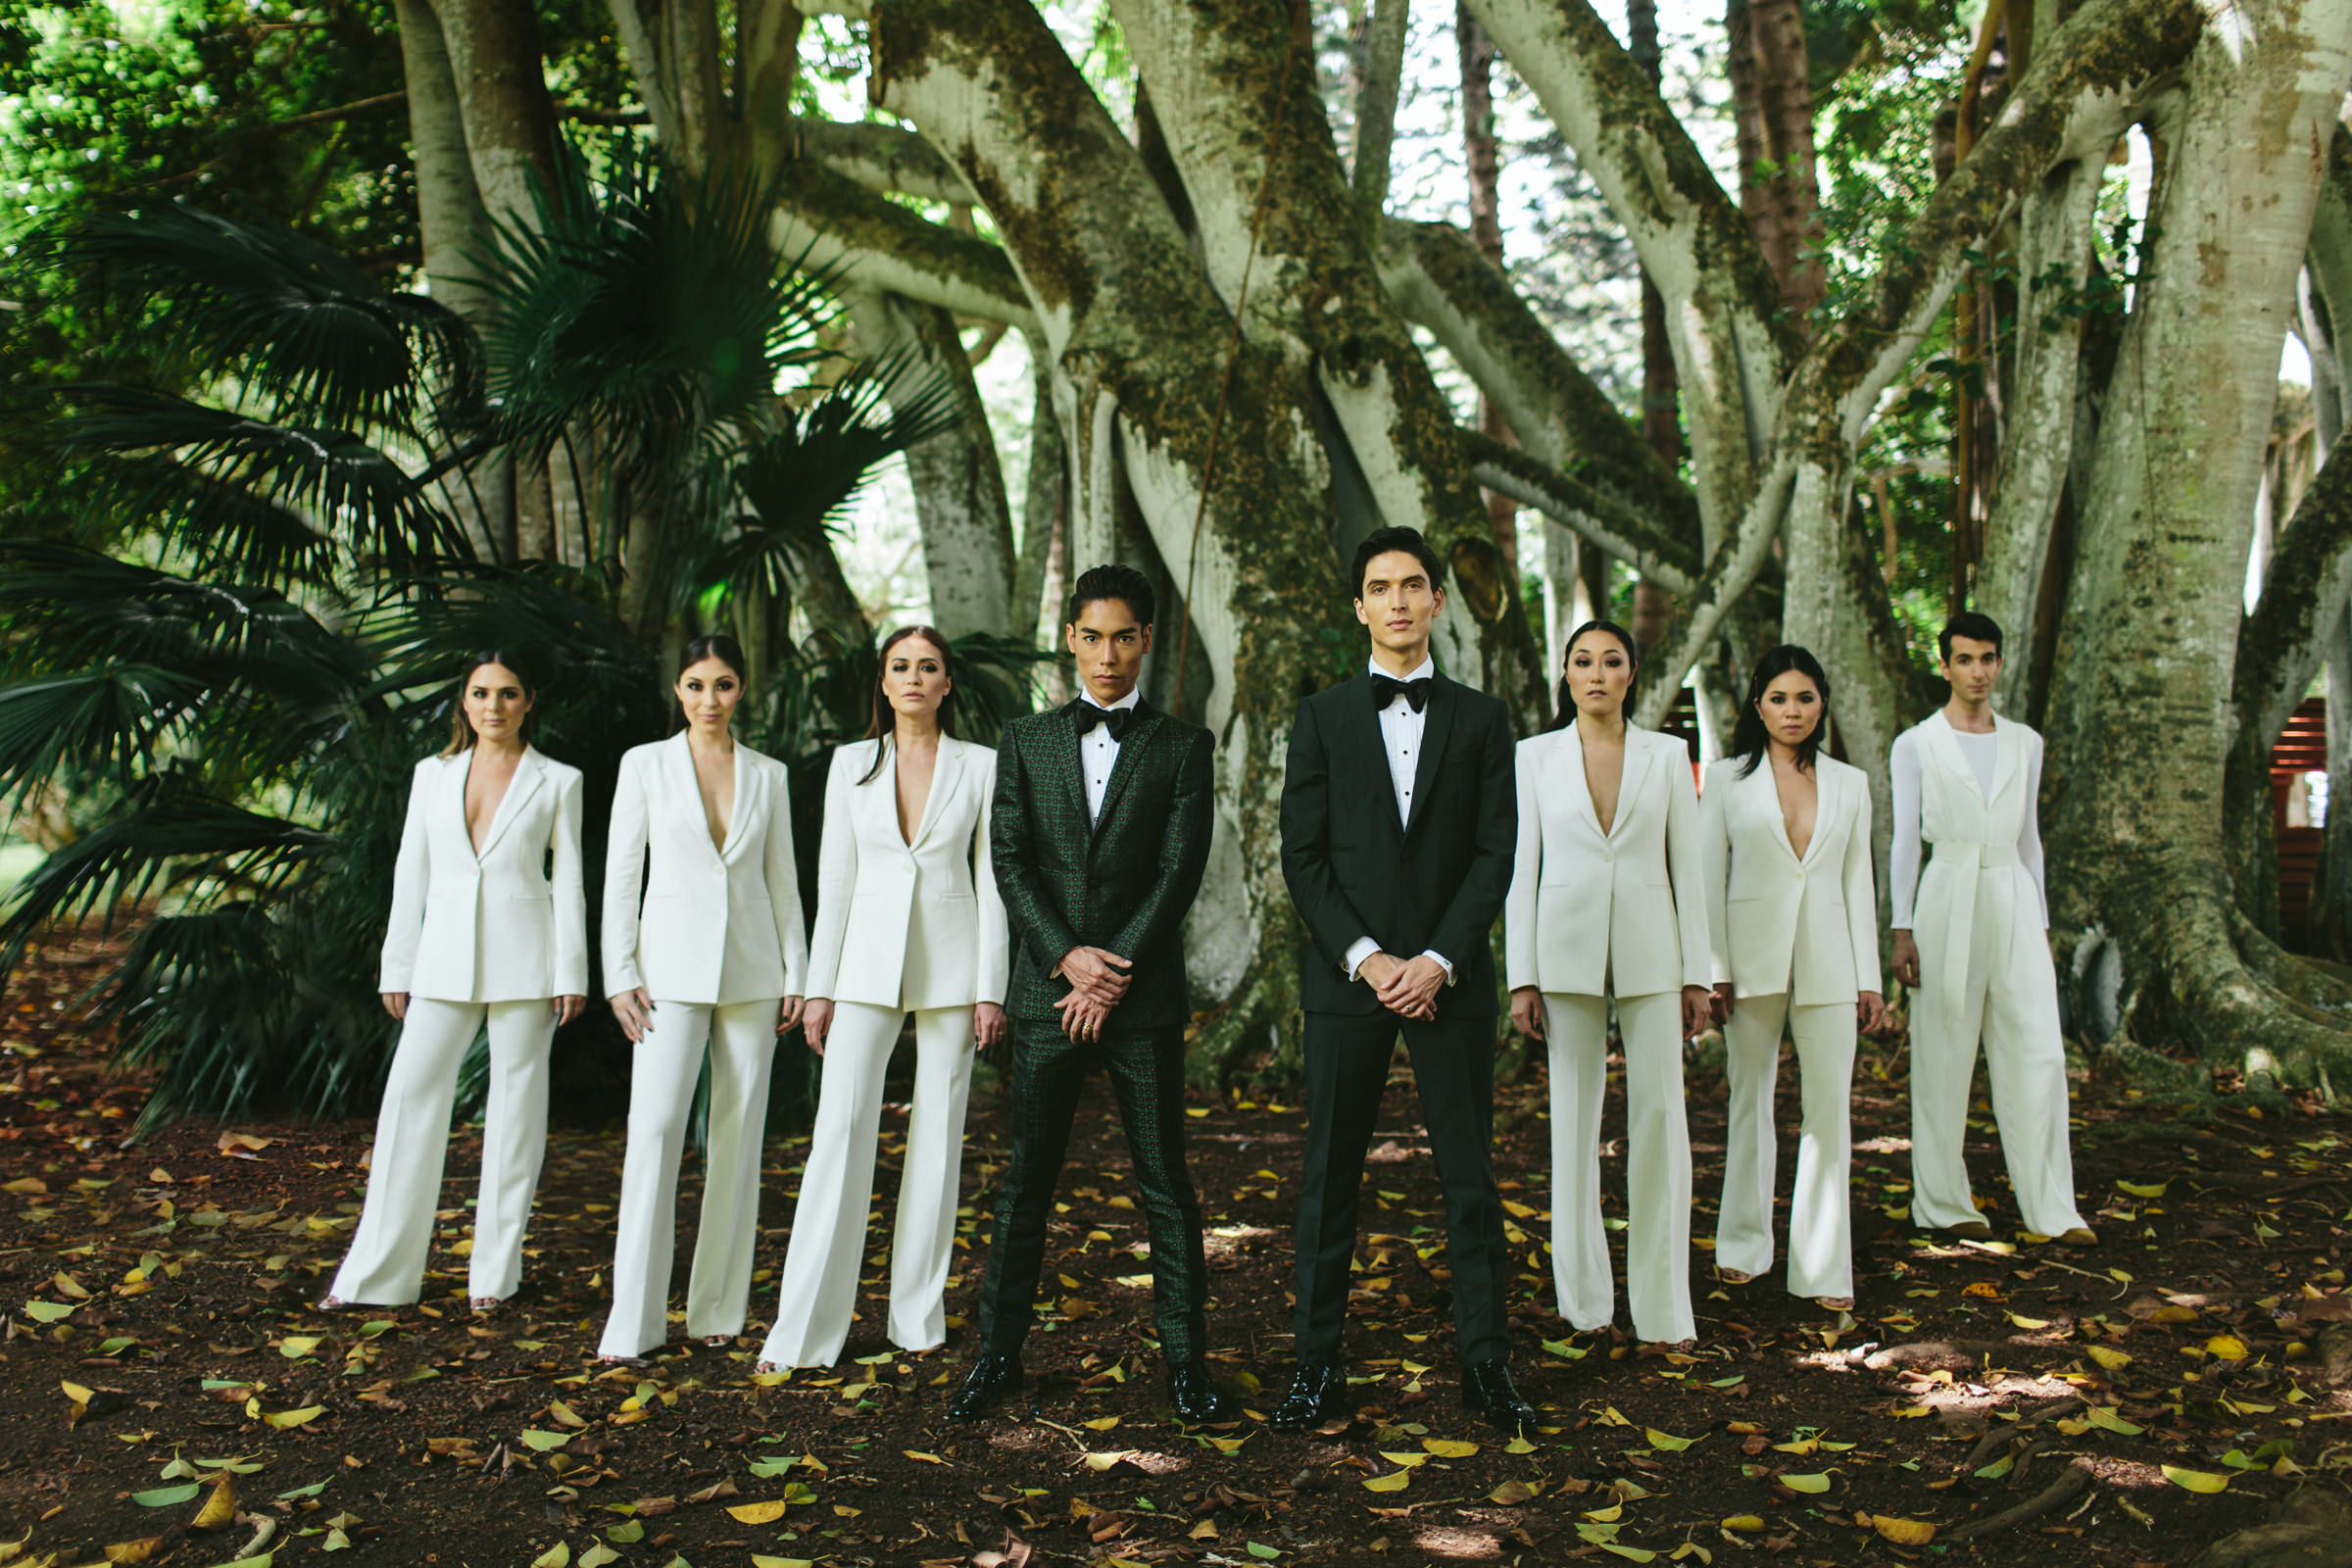 Grooms and bridal party dressed in black and white maui - photo by Melia Lucida